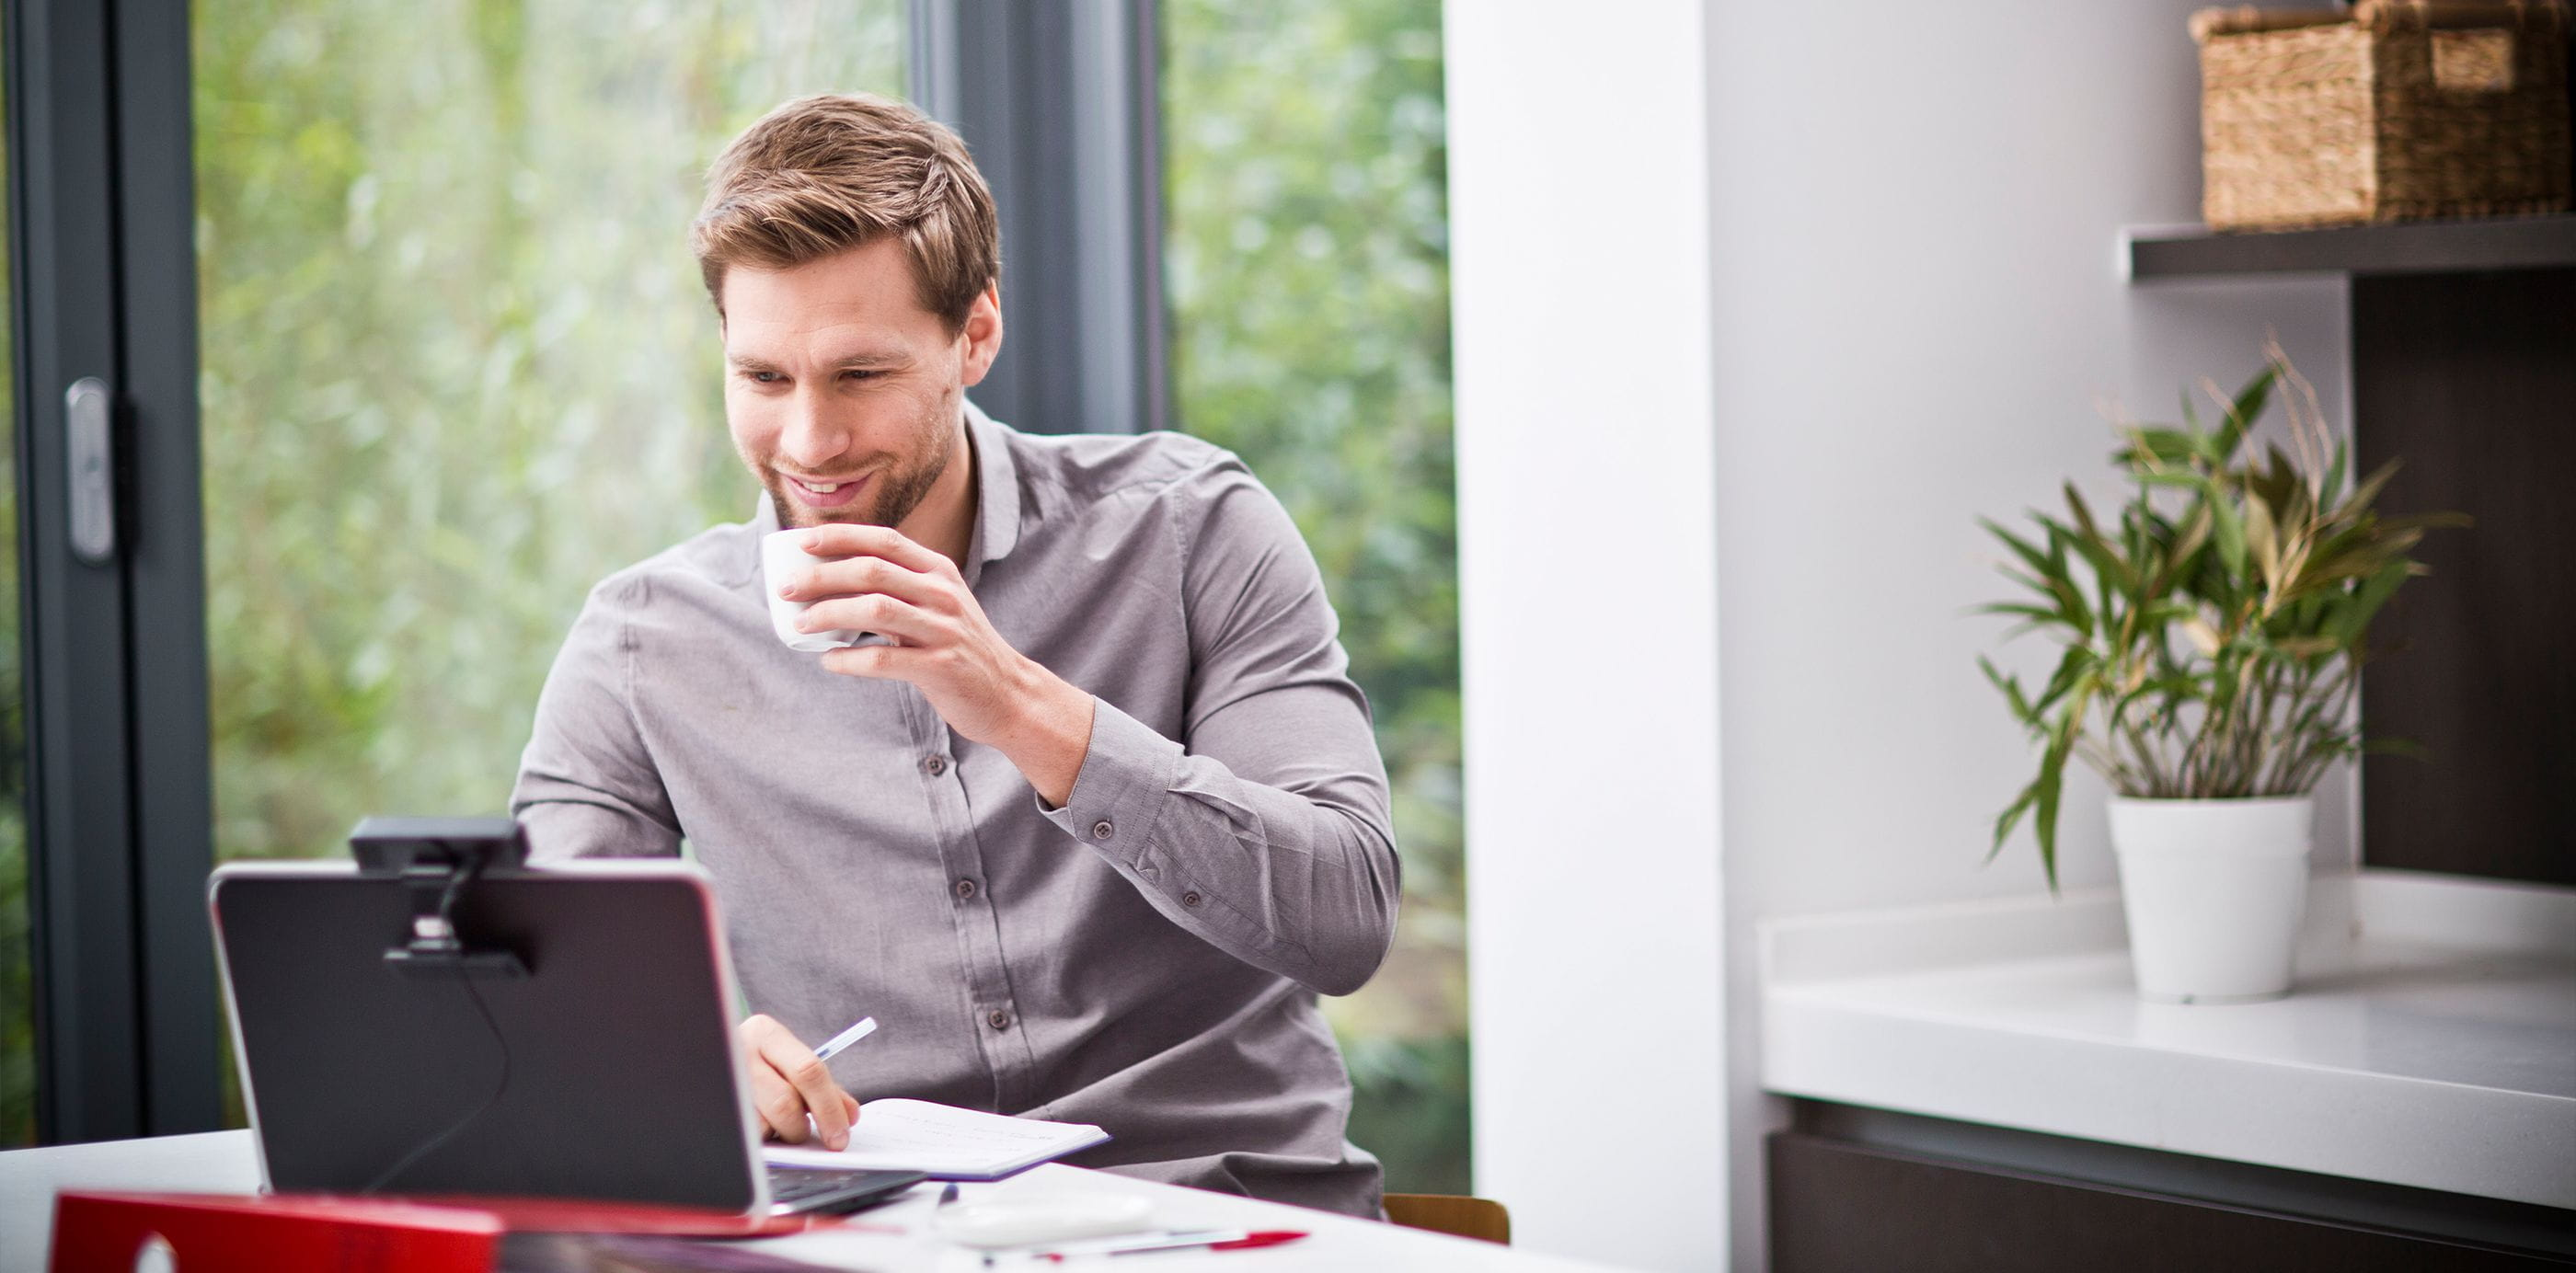 Brother OmniJoin man working on laptop with webcam at home